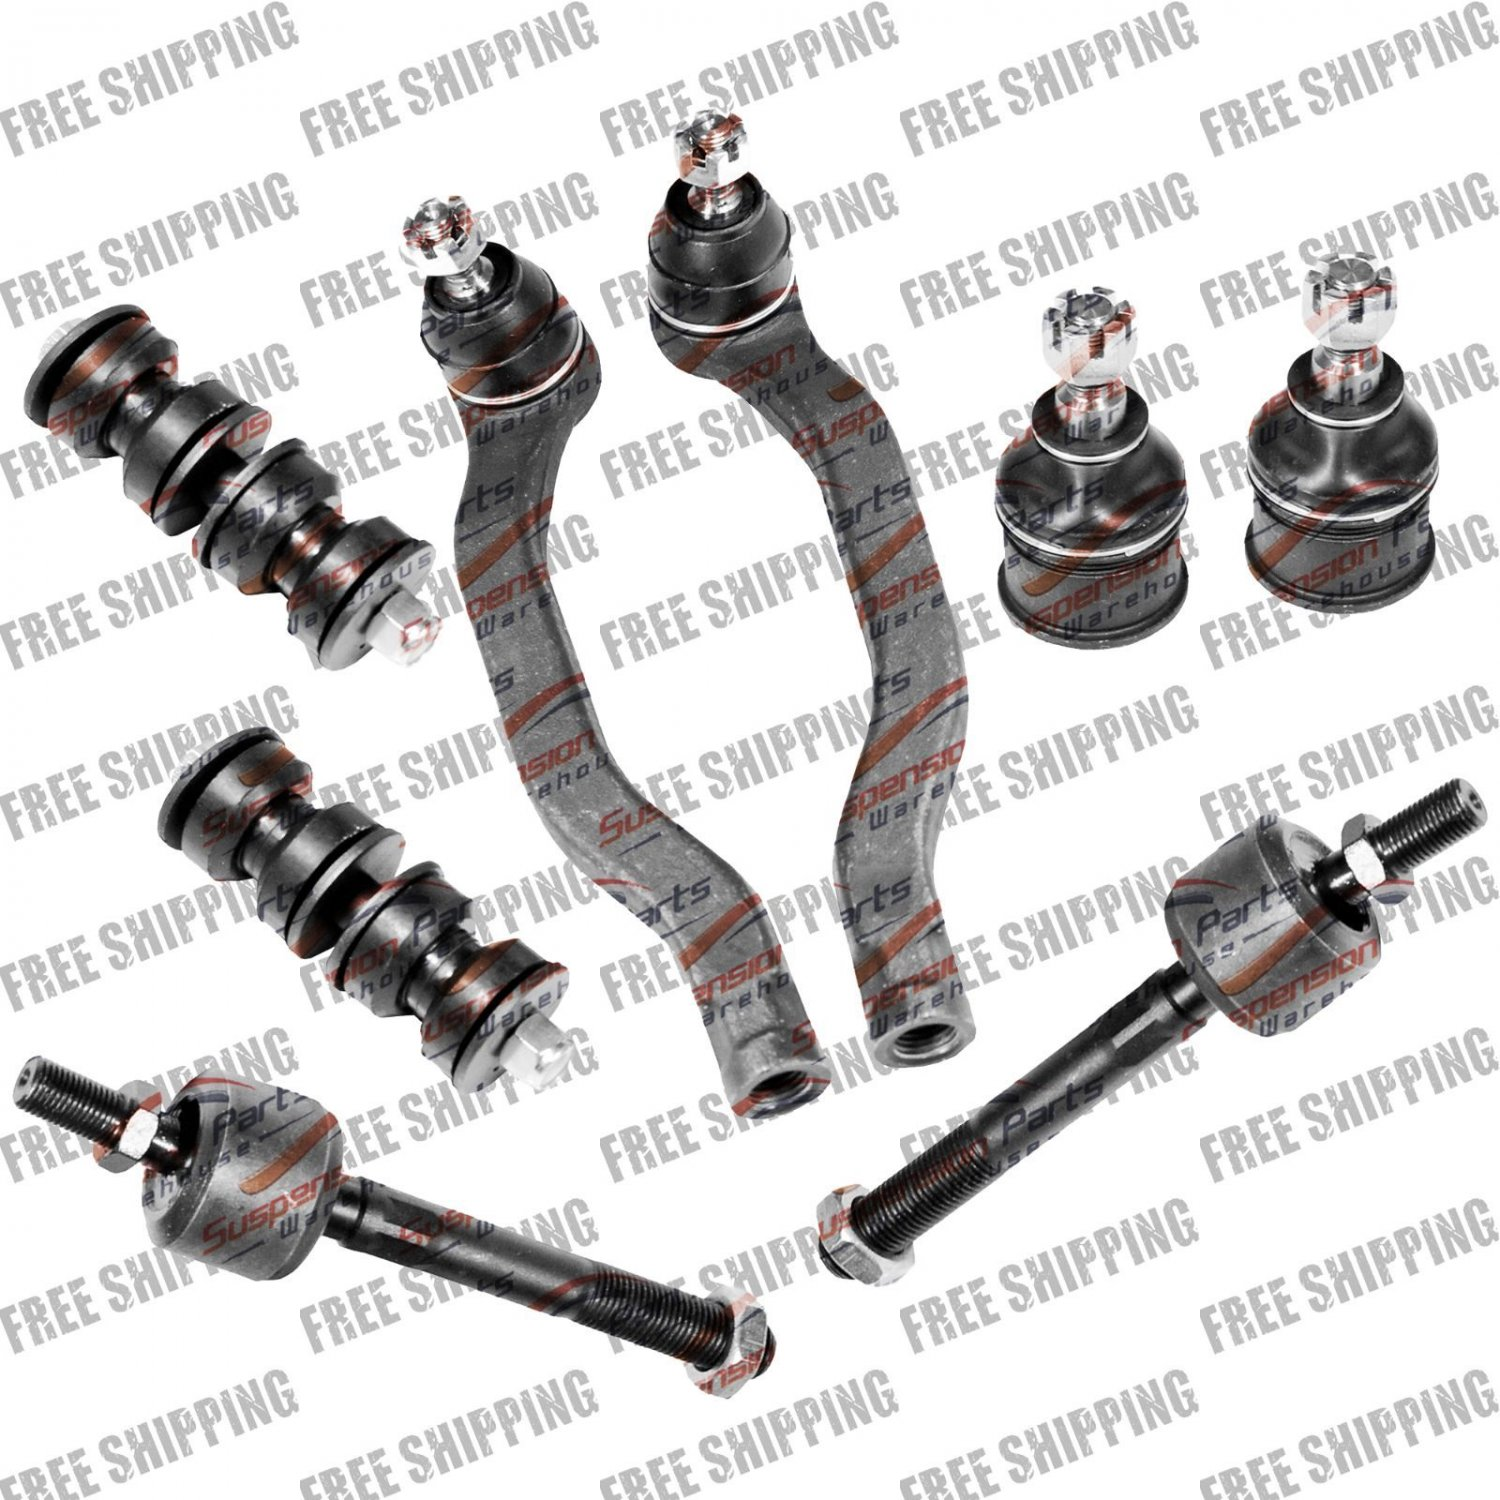 For Honda Accord 90-93 Front New Steering Rebuil Kit Tie Rod Ball Joint Sway Bar